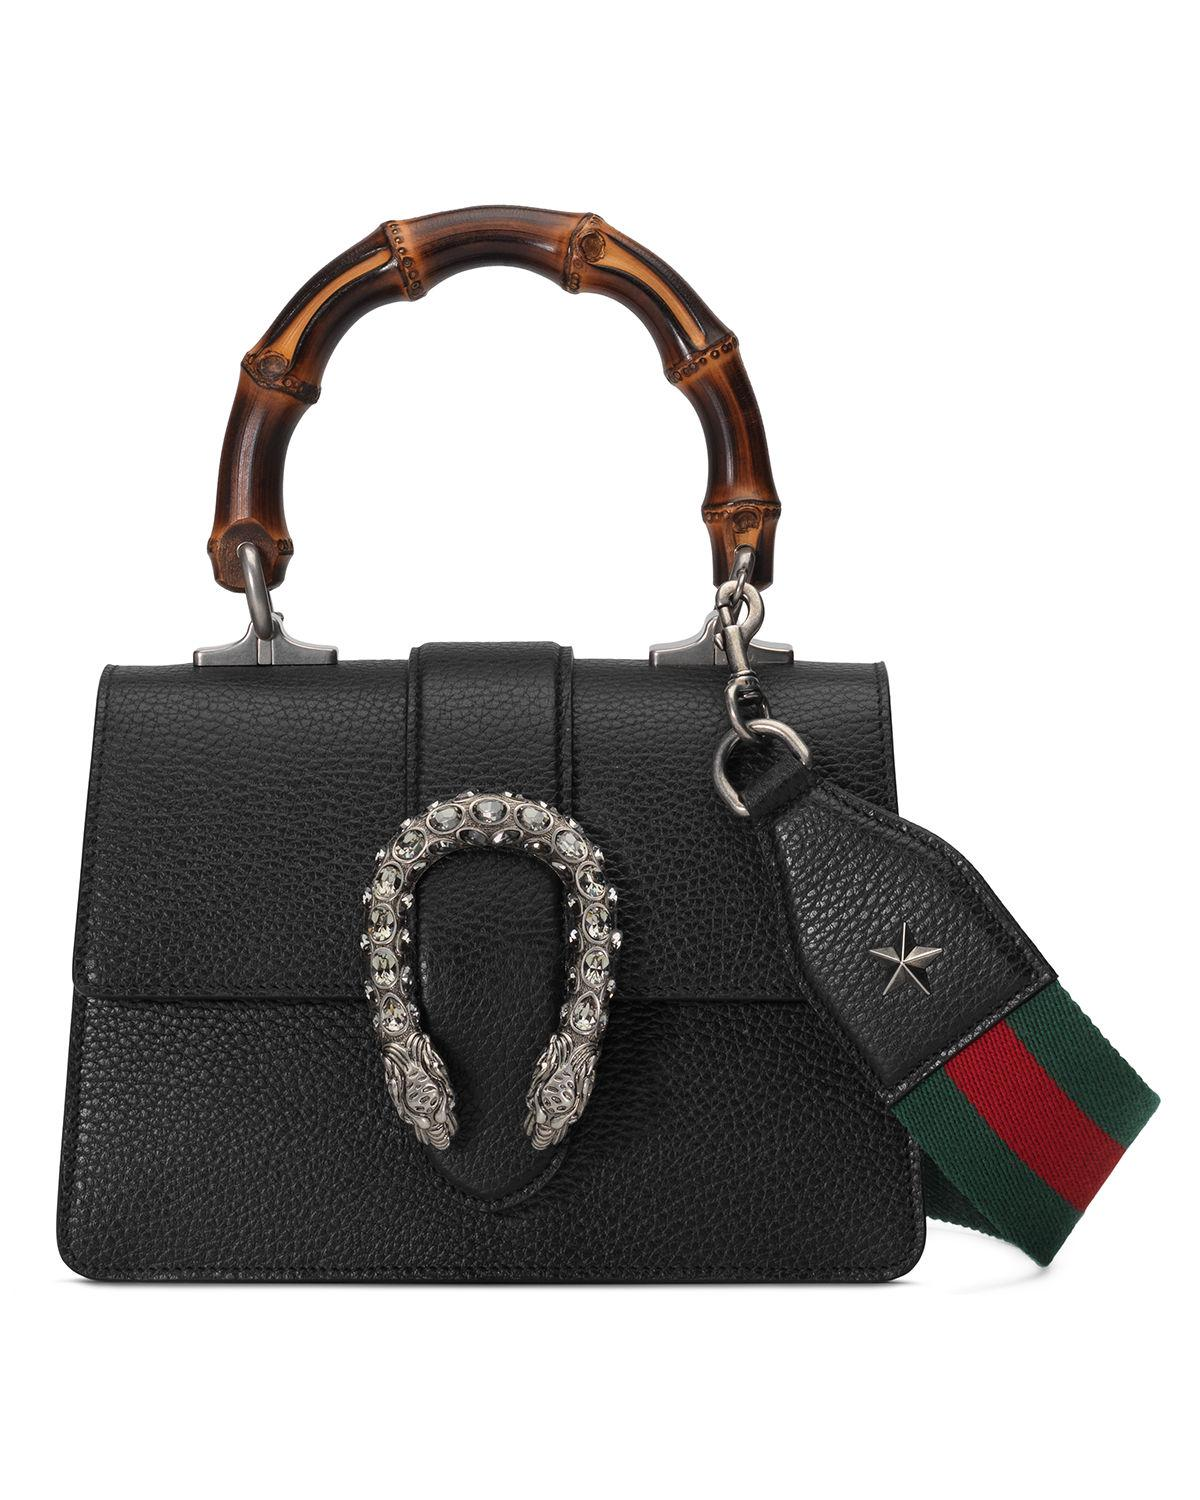 Gucci Dionysus Mini Leather Bamboo-handle Bag in Red - Lyst